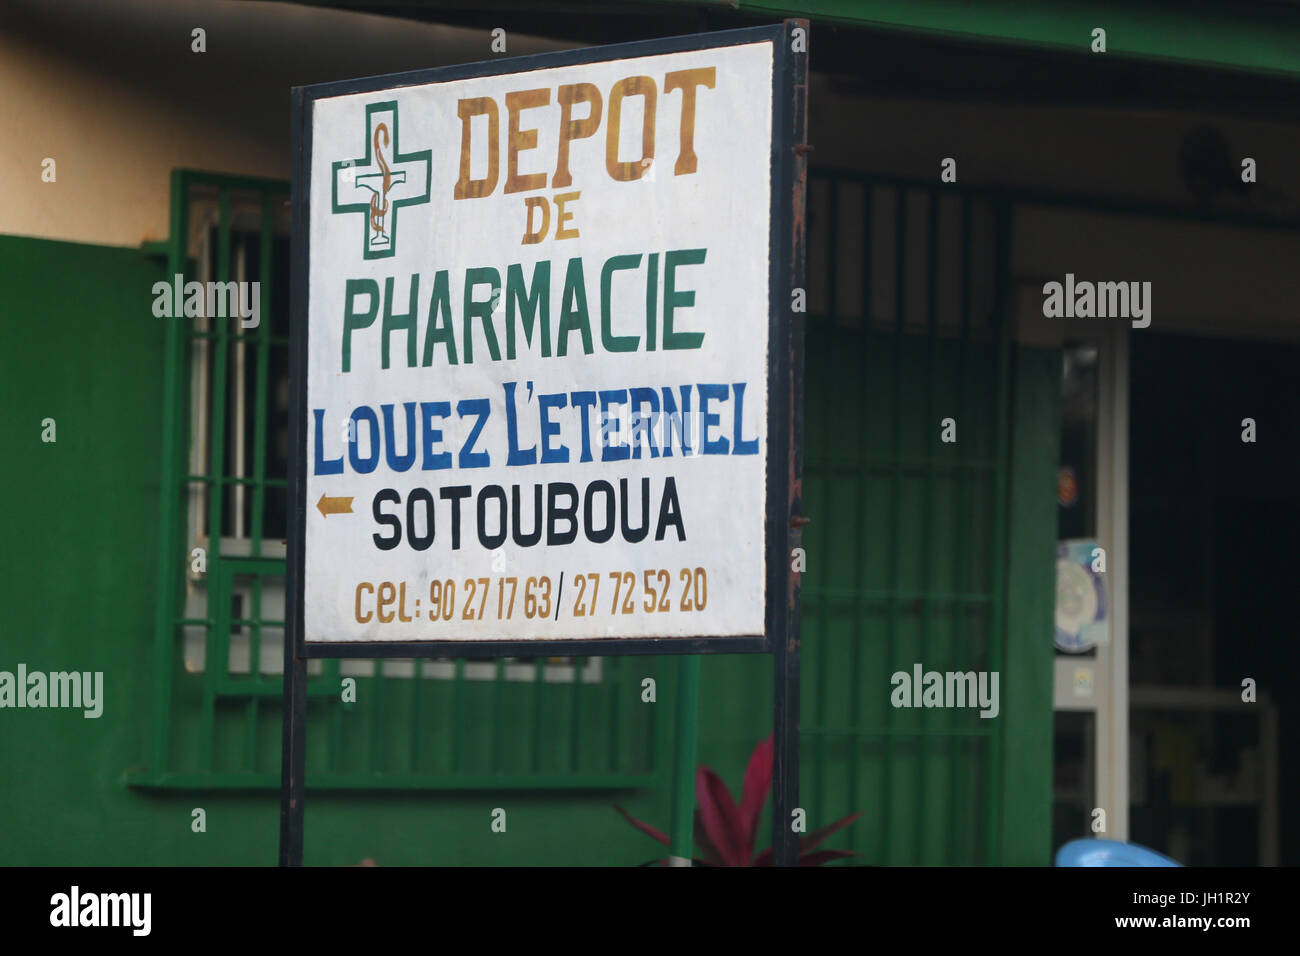 Africa. Pharmacy. Togo. - Stock Image